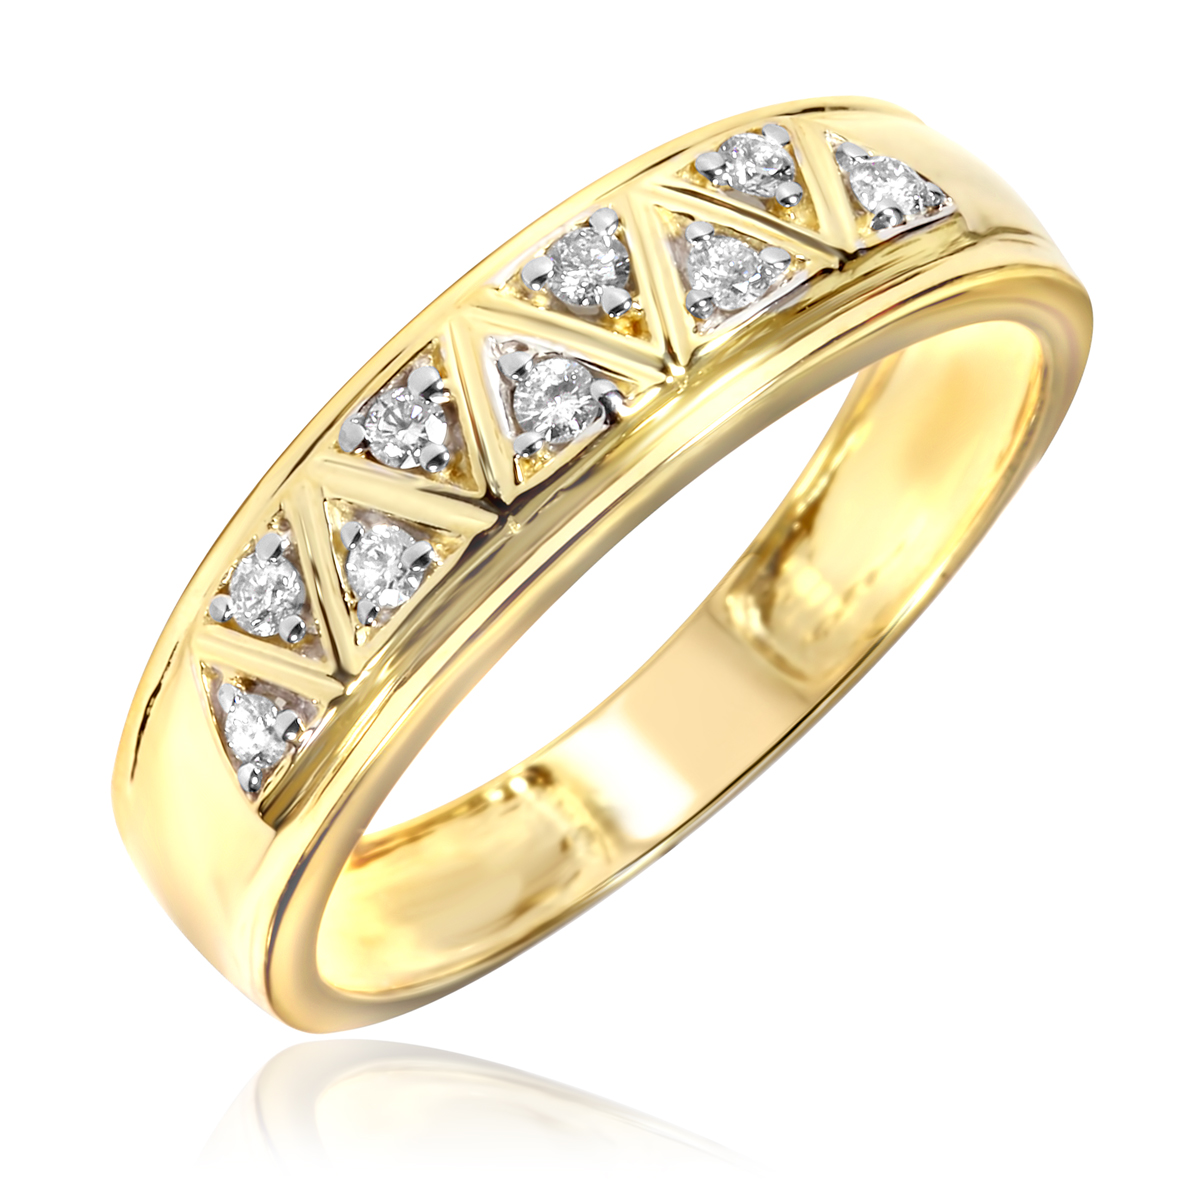 1 5 carat t w diamond men 39 s wedding ring 10k yellow gold for Men s 1 carat diamond wedding bands